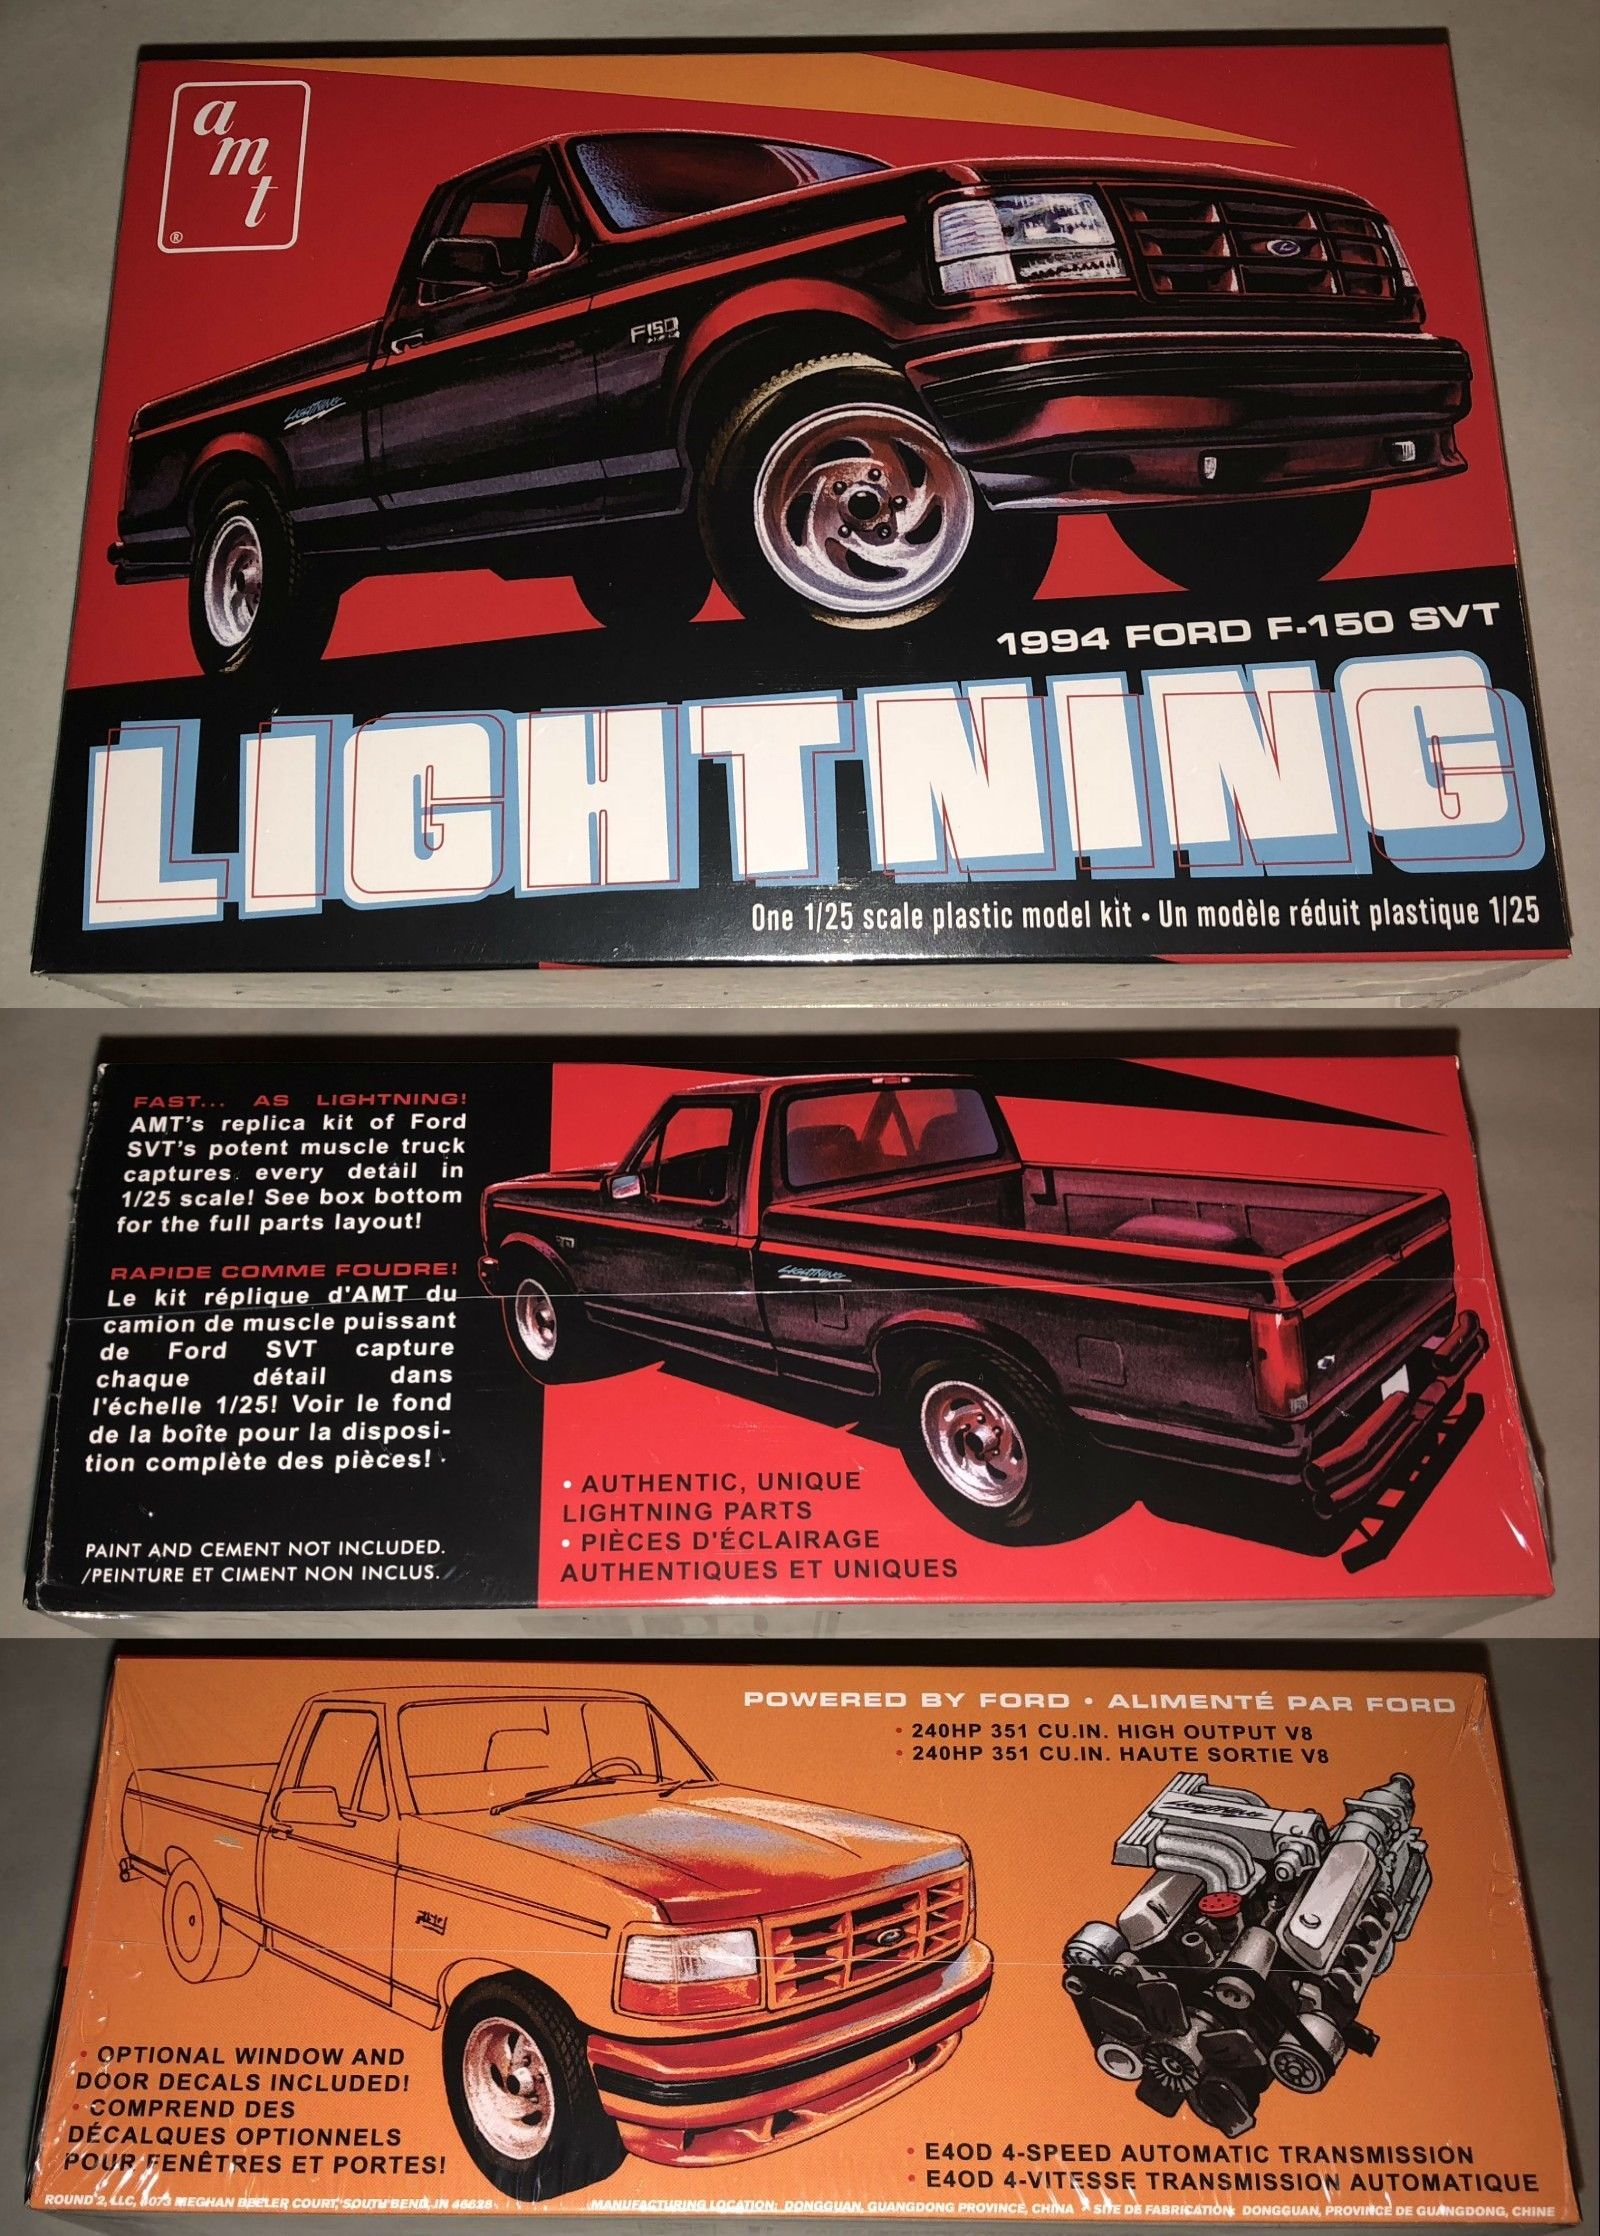 Classic 2581 Amt 1994 Ford F 150 Lightning Pickup Truck 1 25 Scale Model Kit 1110 Buy It Now Only 24 99 On Plastic Model Kits Model Kit Truck Detailing